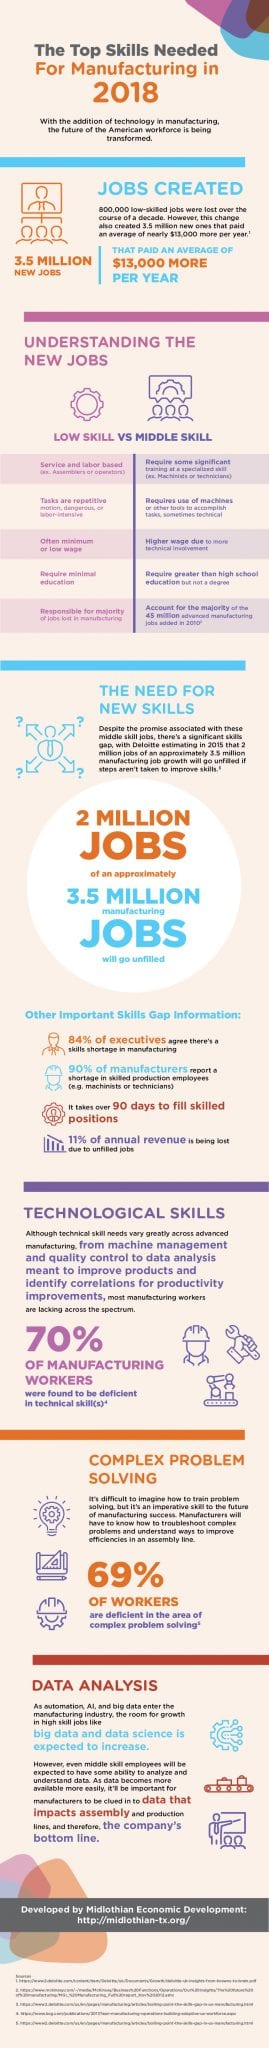 benefits of infographics and storytelling through stats